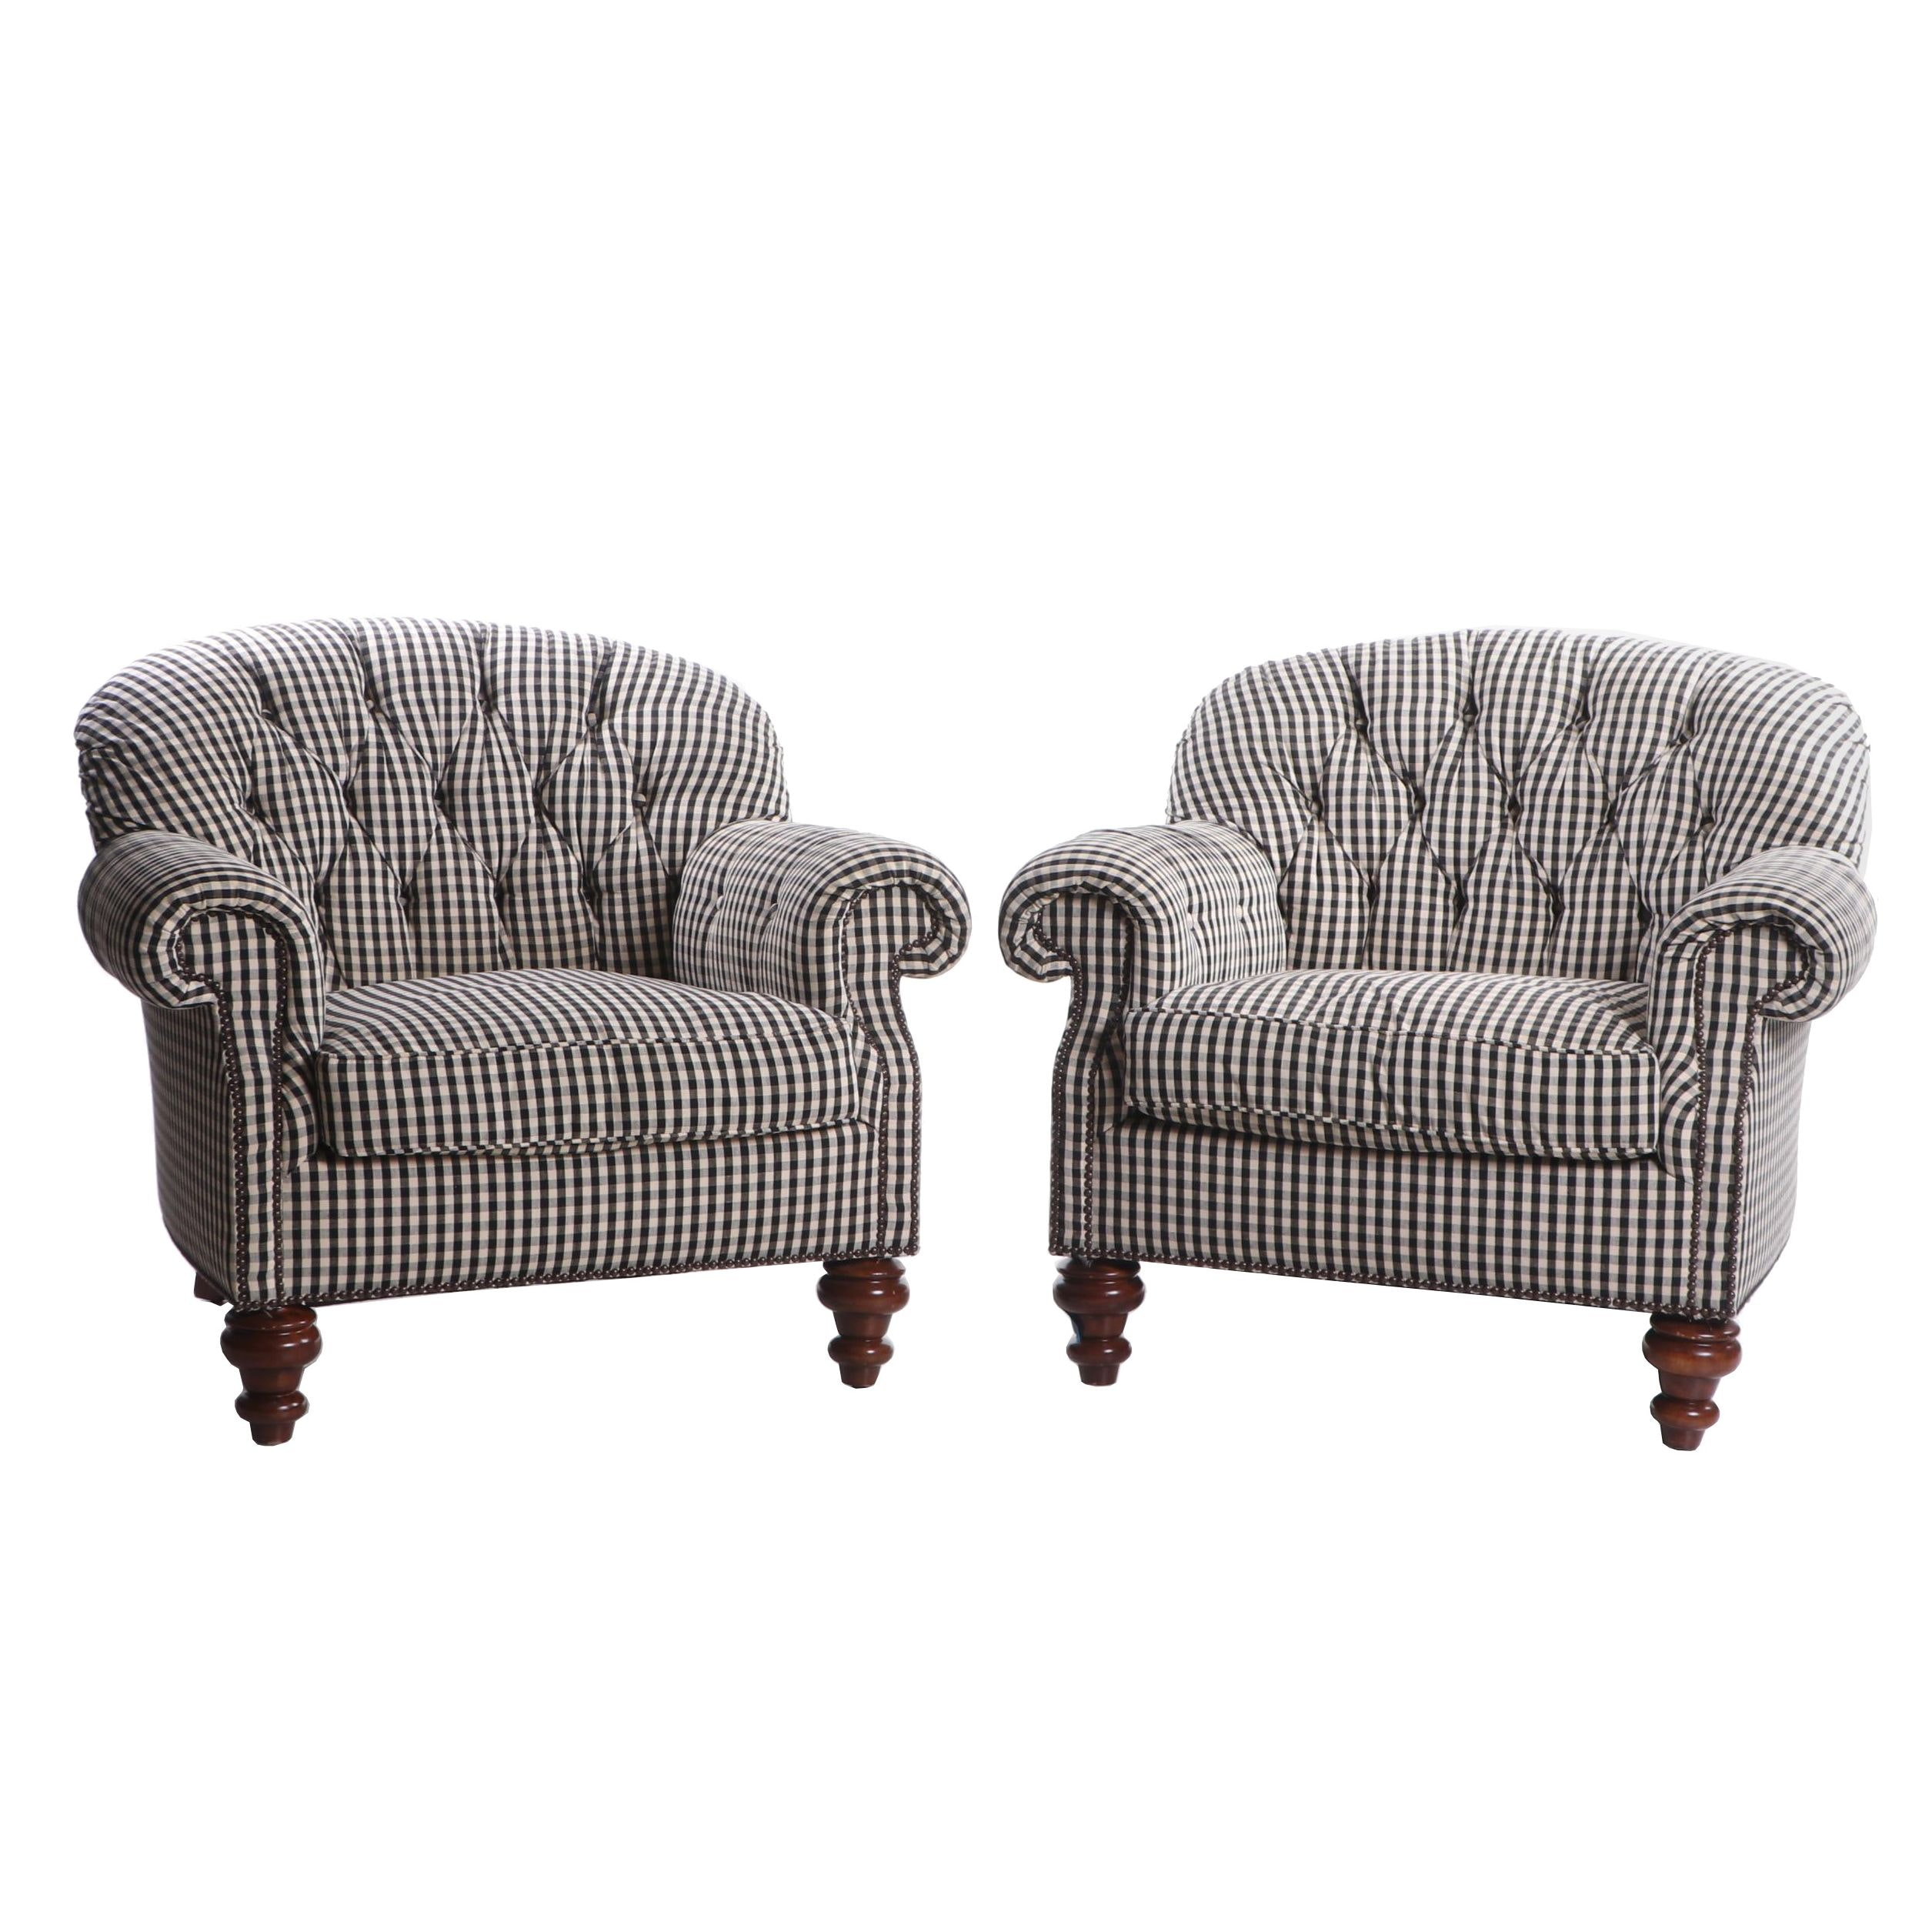 Pair of TRS Upholstered Lounge Chairs, Mid to Late 20th Century